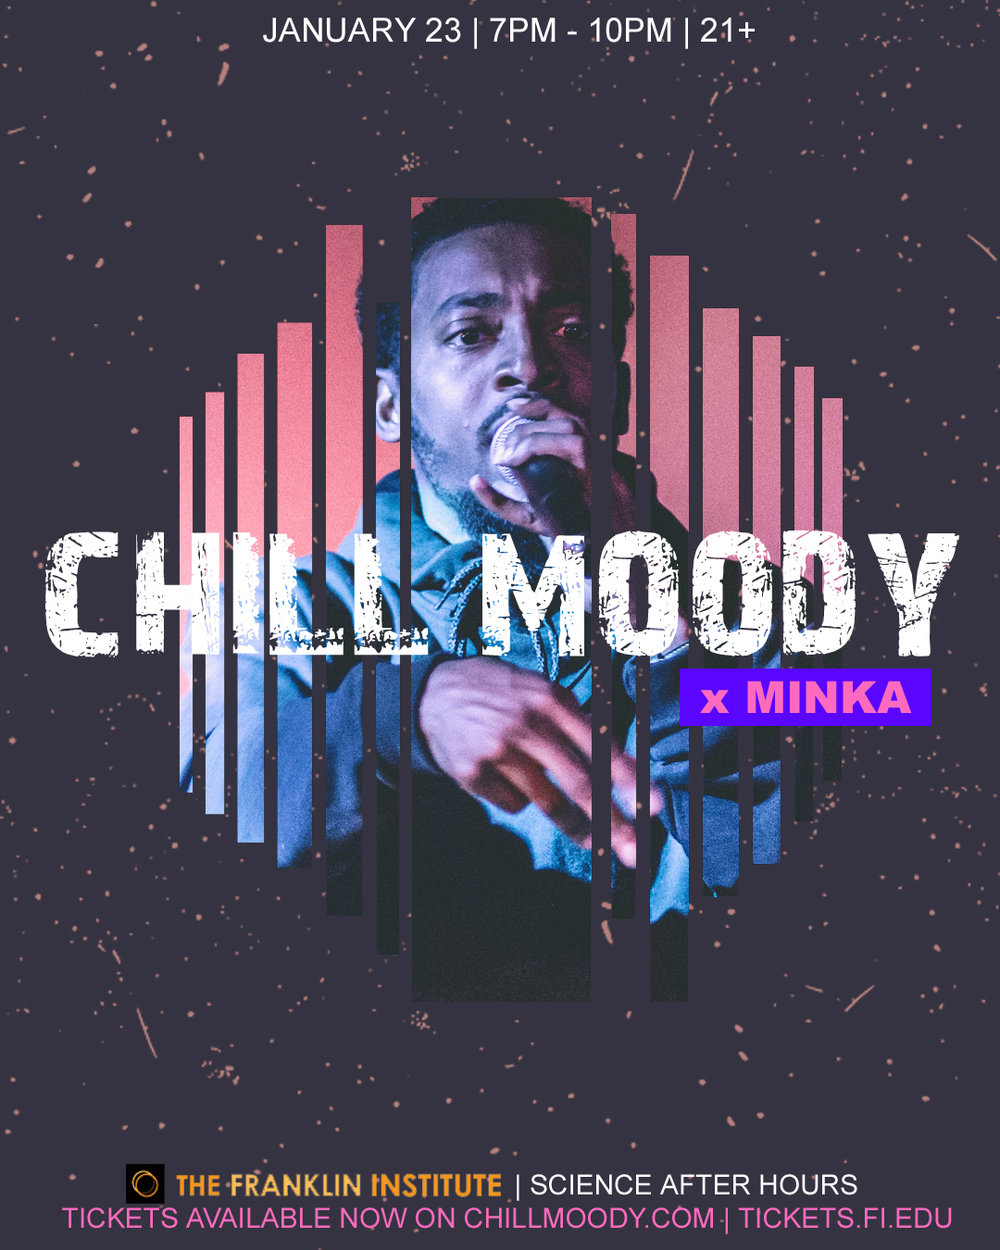 Tuesday January 23rd 7pm  Chill Moody x Minka  The Franklin Institute | Science After Hours  -